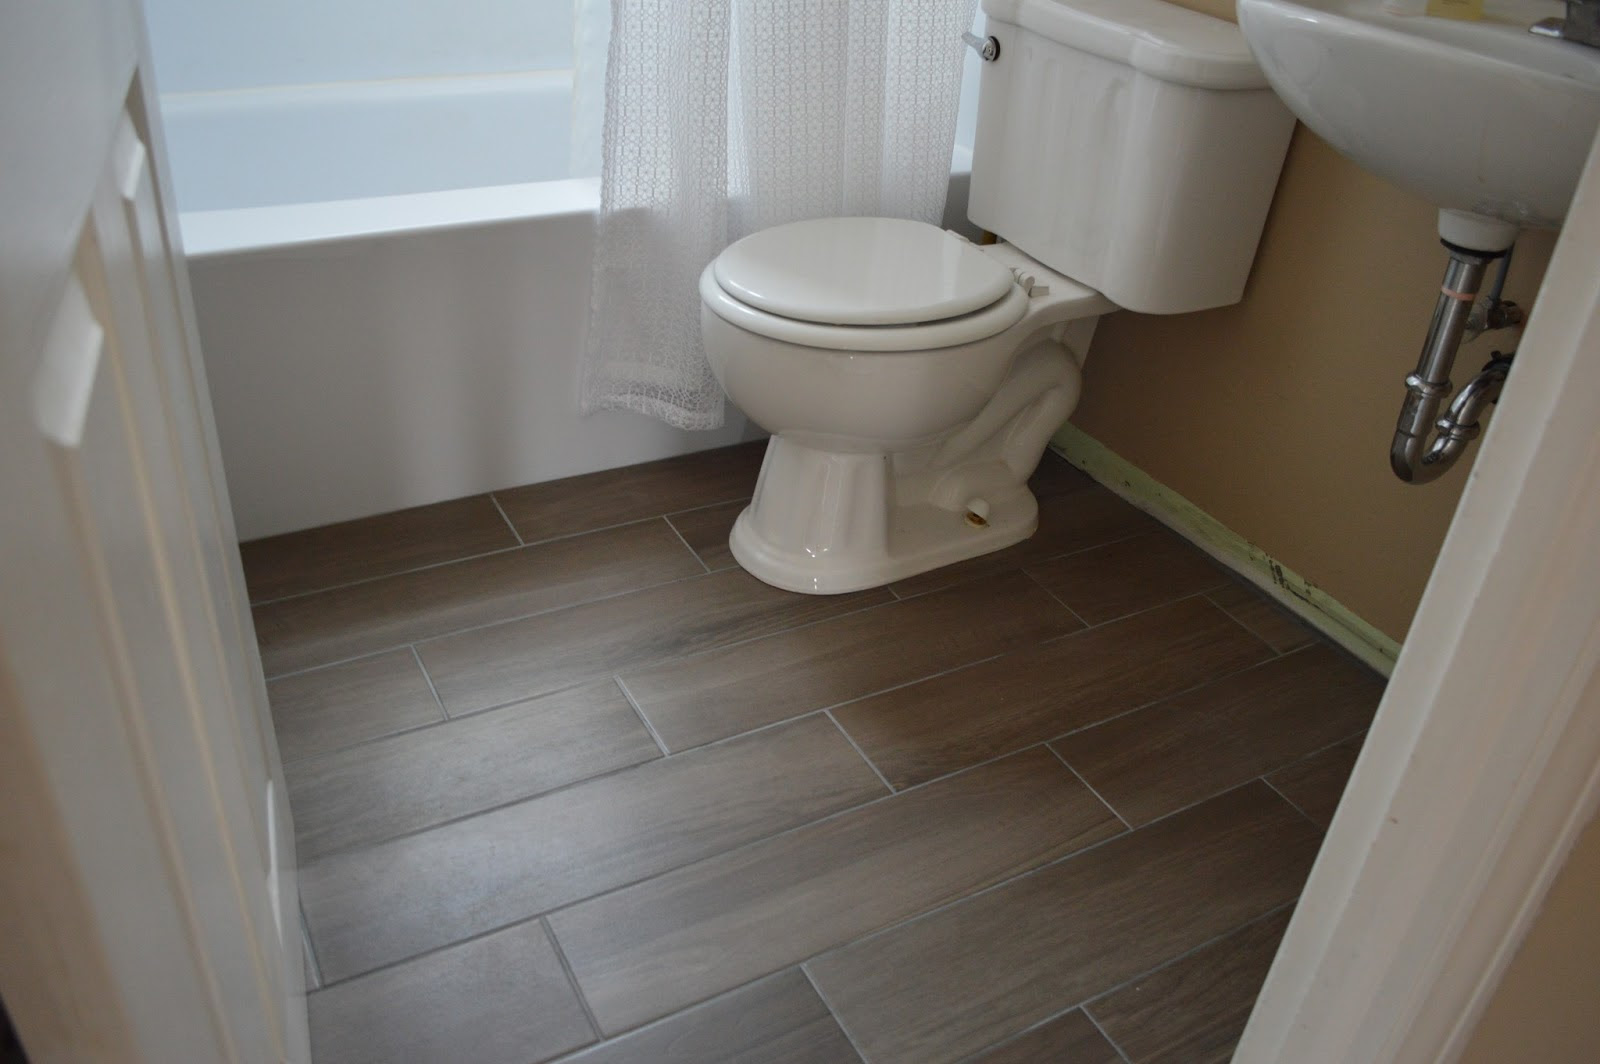 27 ideas and pictures of wood or tile baseboard in bathroom